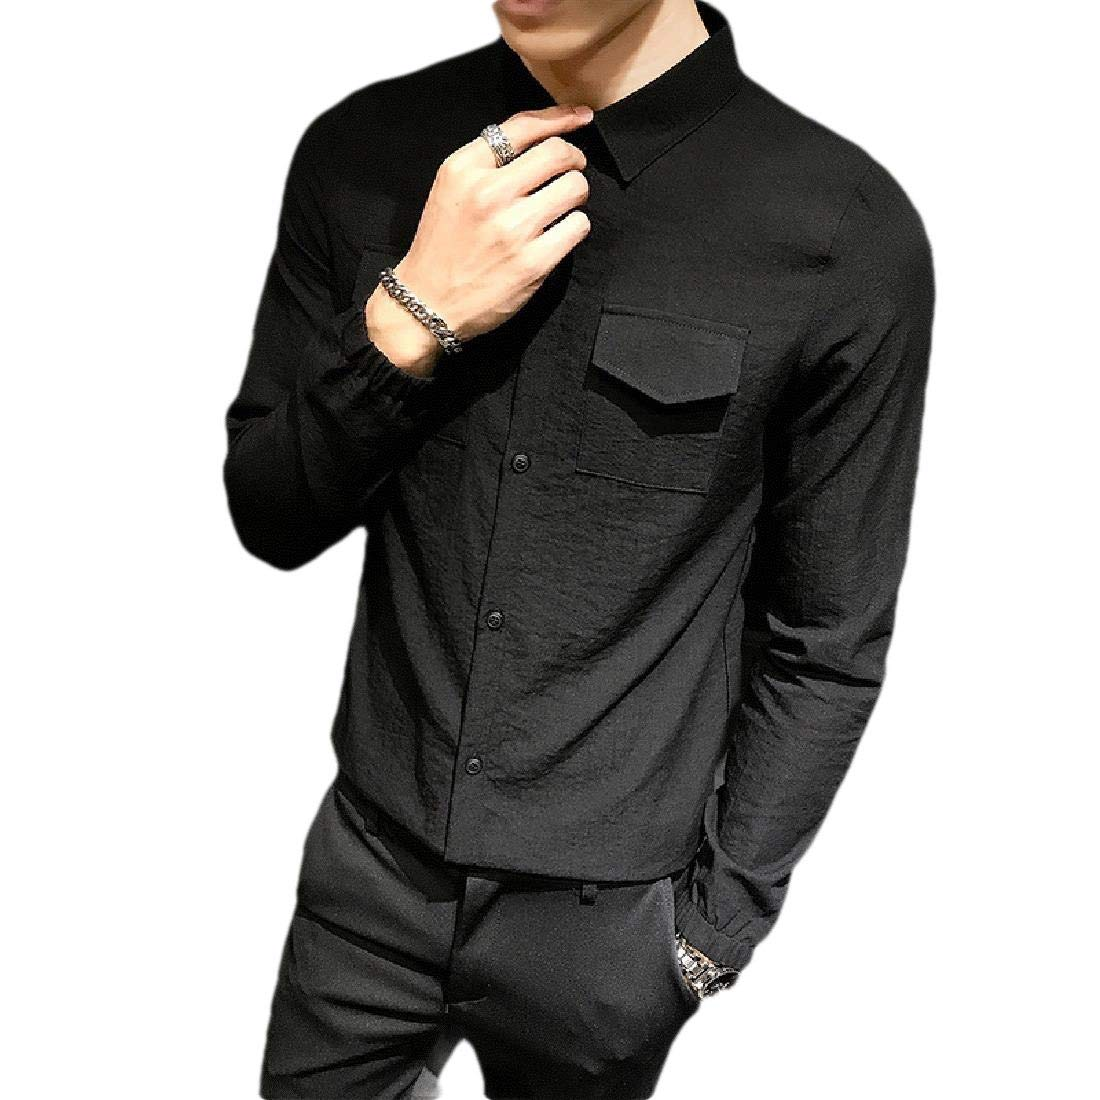 Comaba Mens Regular Fit Solid Colored Long Sleeve Point Collar T-Shirts